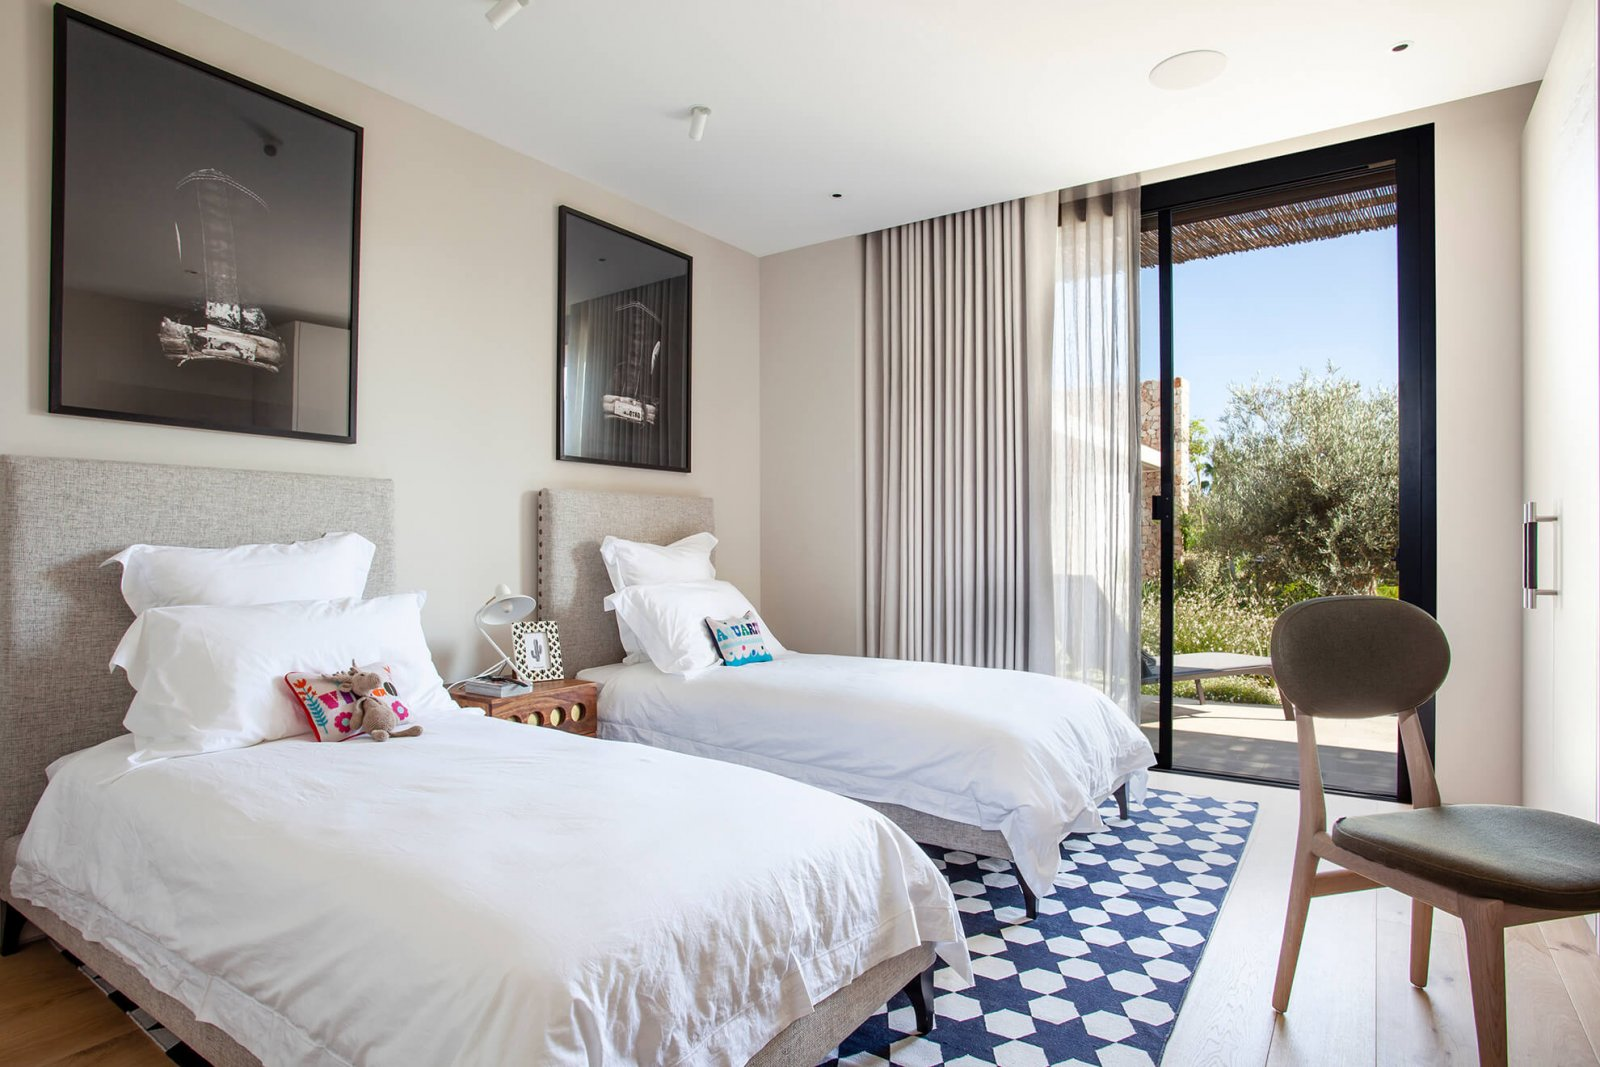 Detail view of a room, with two beds, built-in wardrobe and large glass doors to the garden of the Sol de Mallorca house